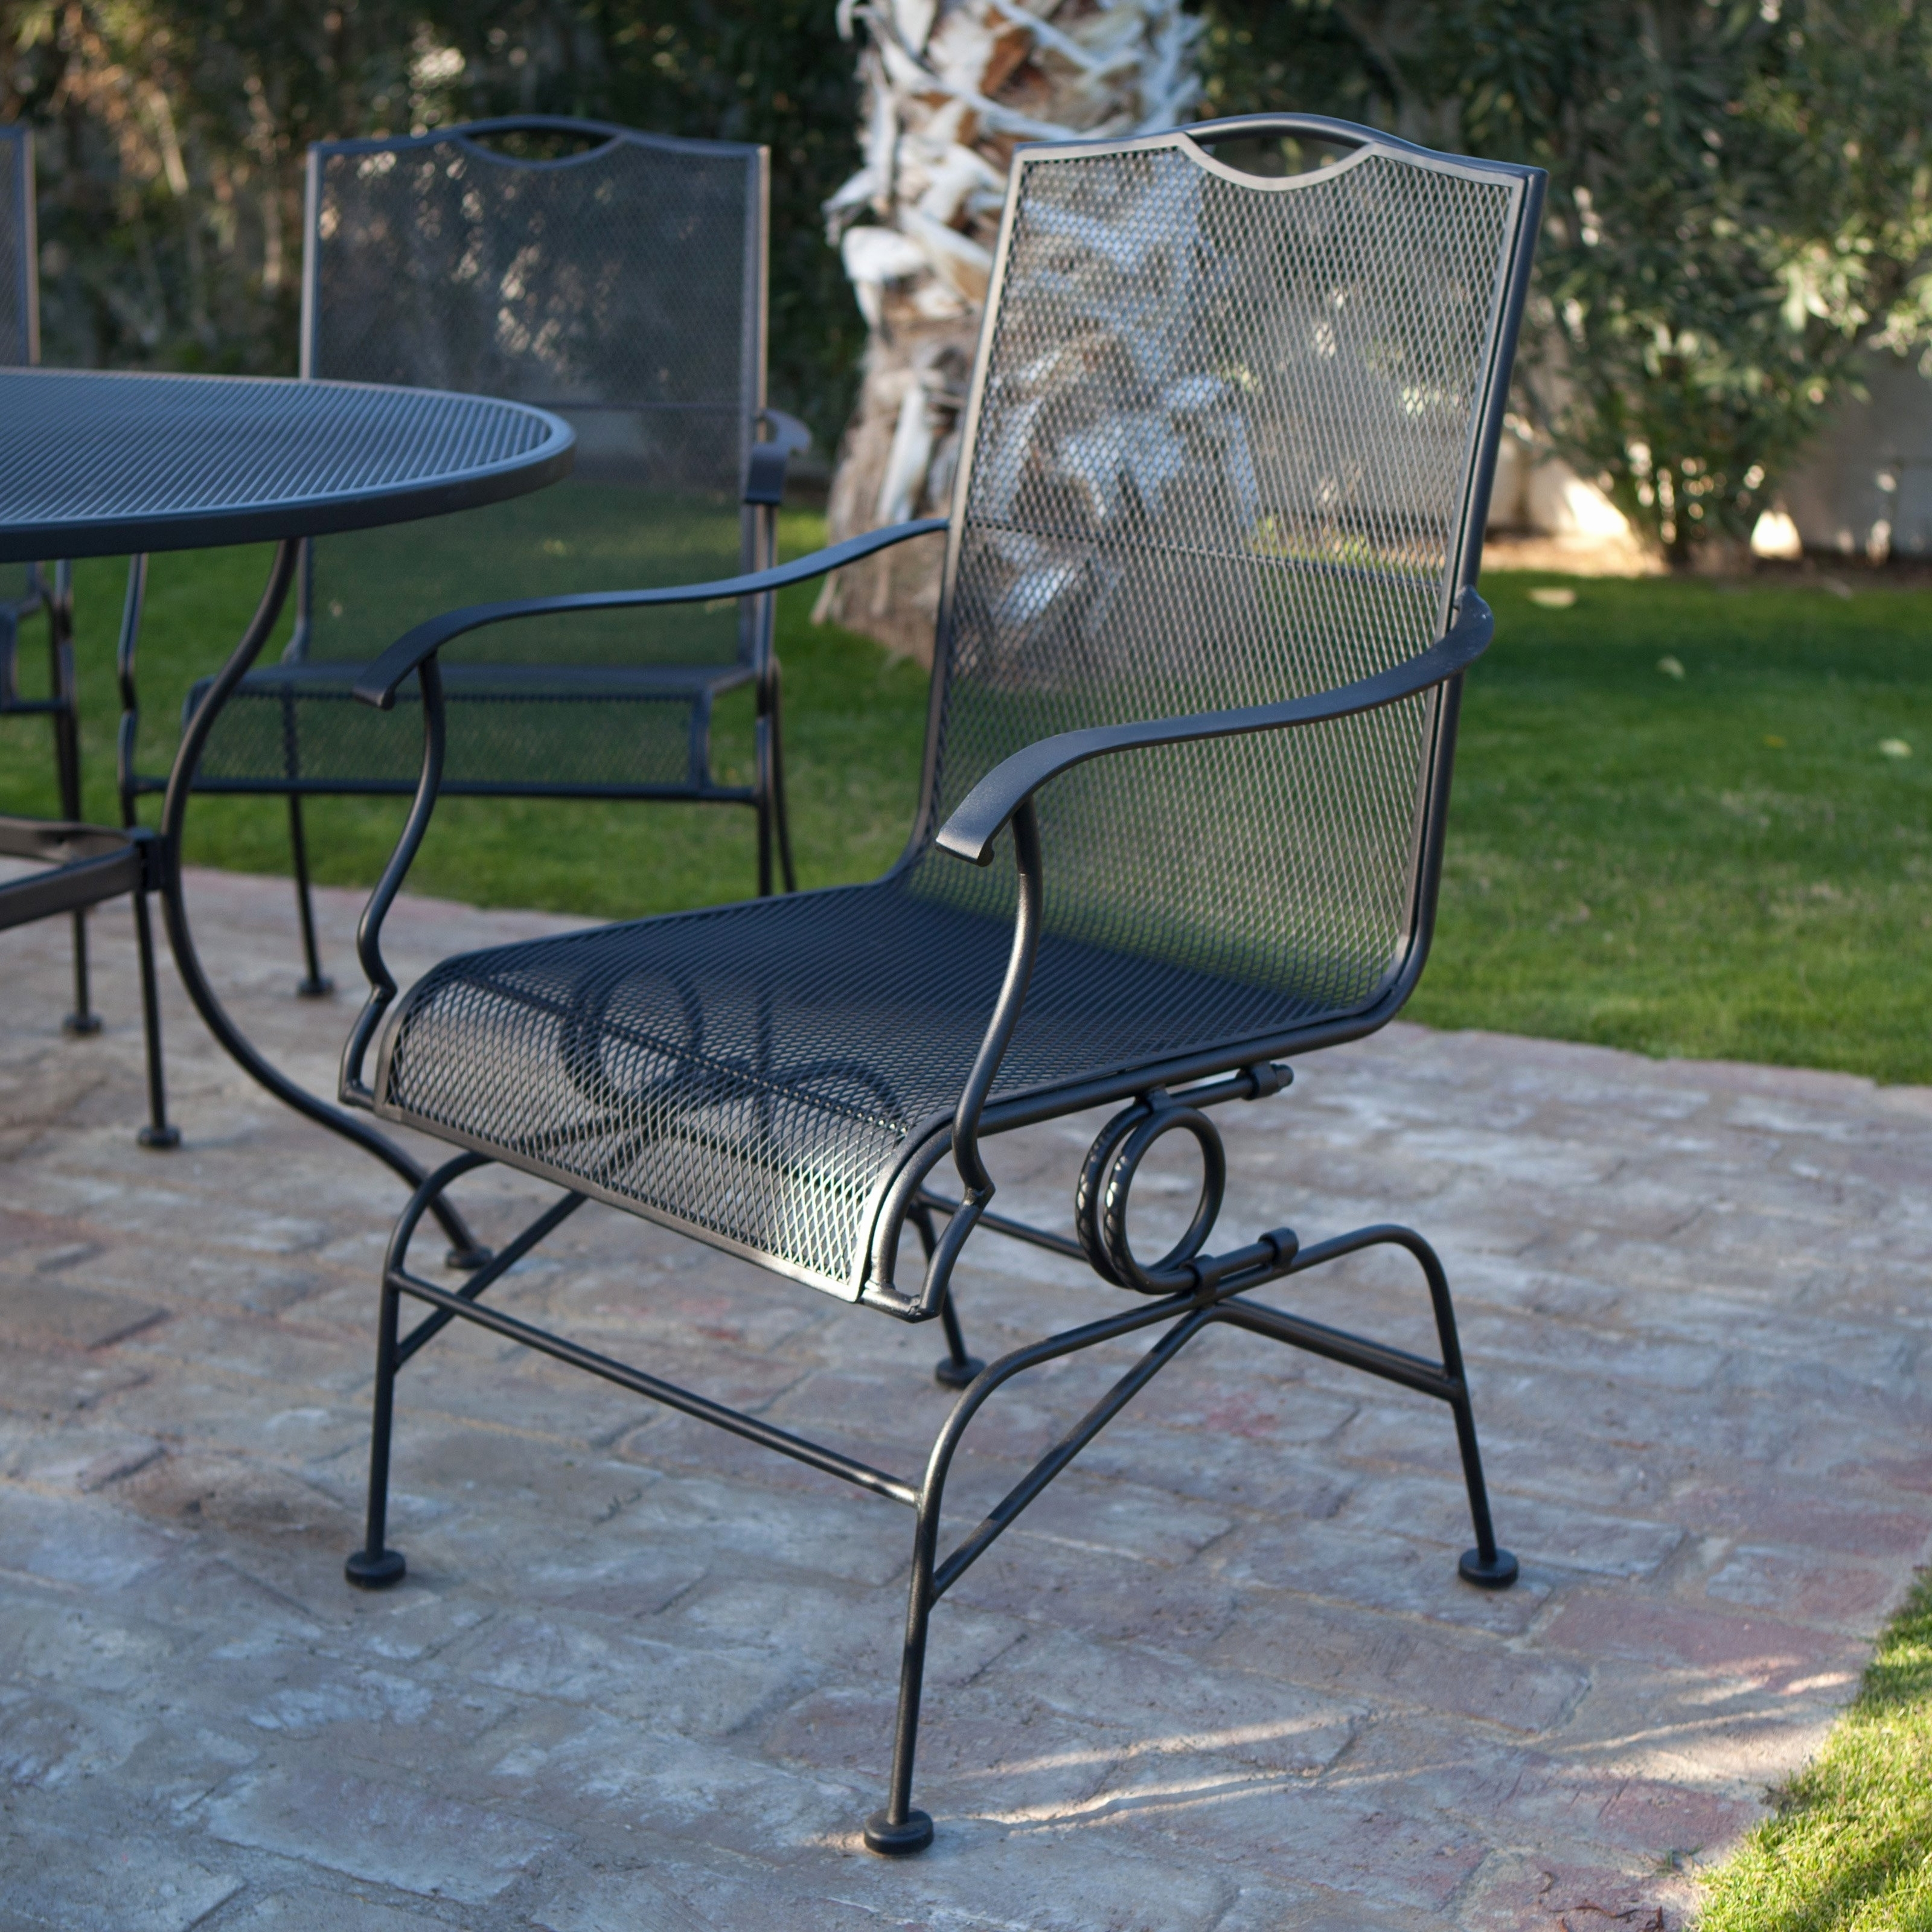 Widely Used Wrought Iron Patio Conversation Sets With Regard To 30 Amazing Wrought Iron Garden Furniture Ireland Scheme – Bakken (View 7 of 20)